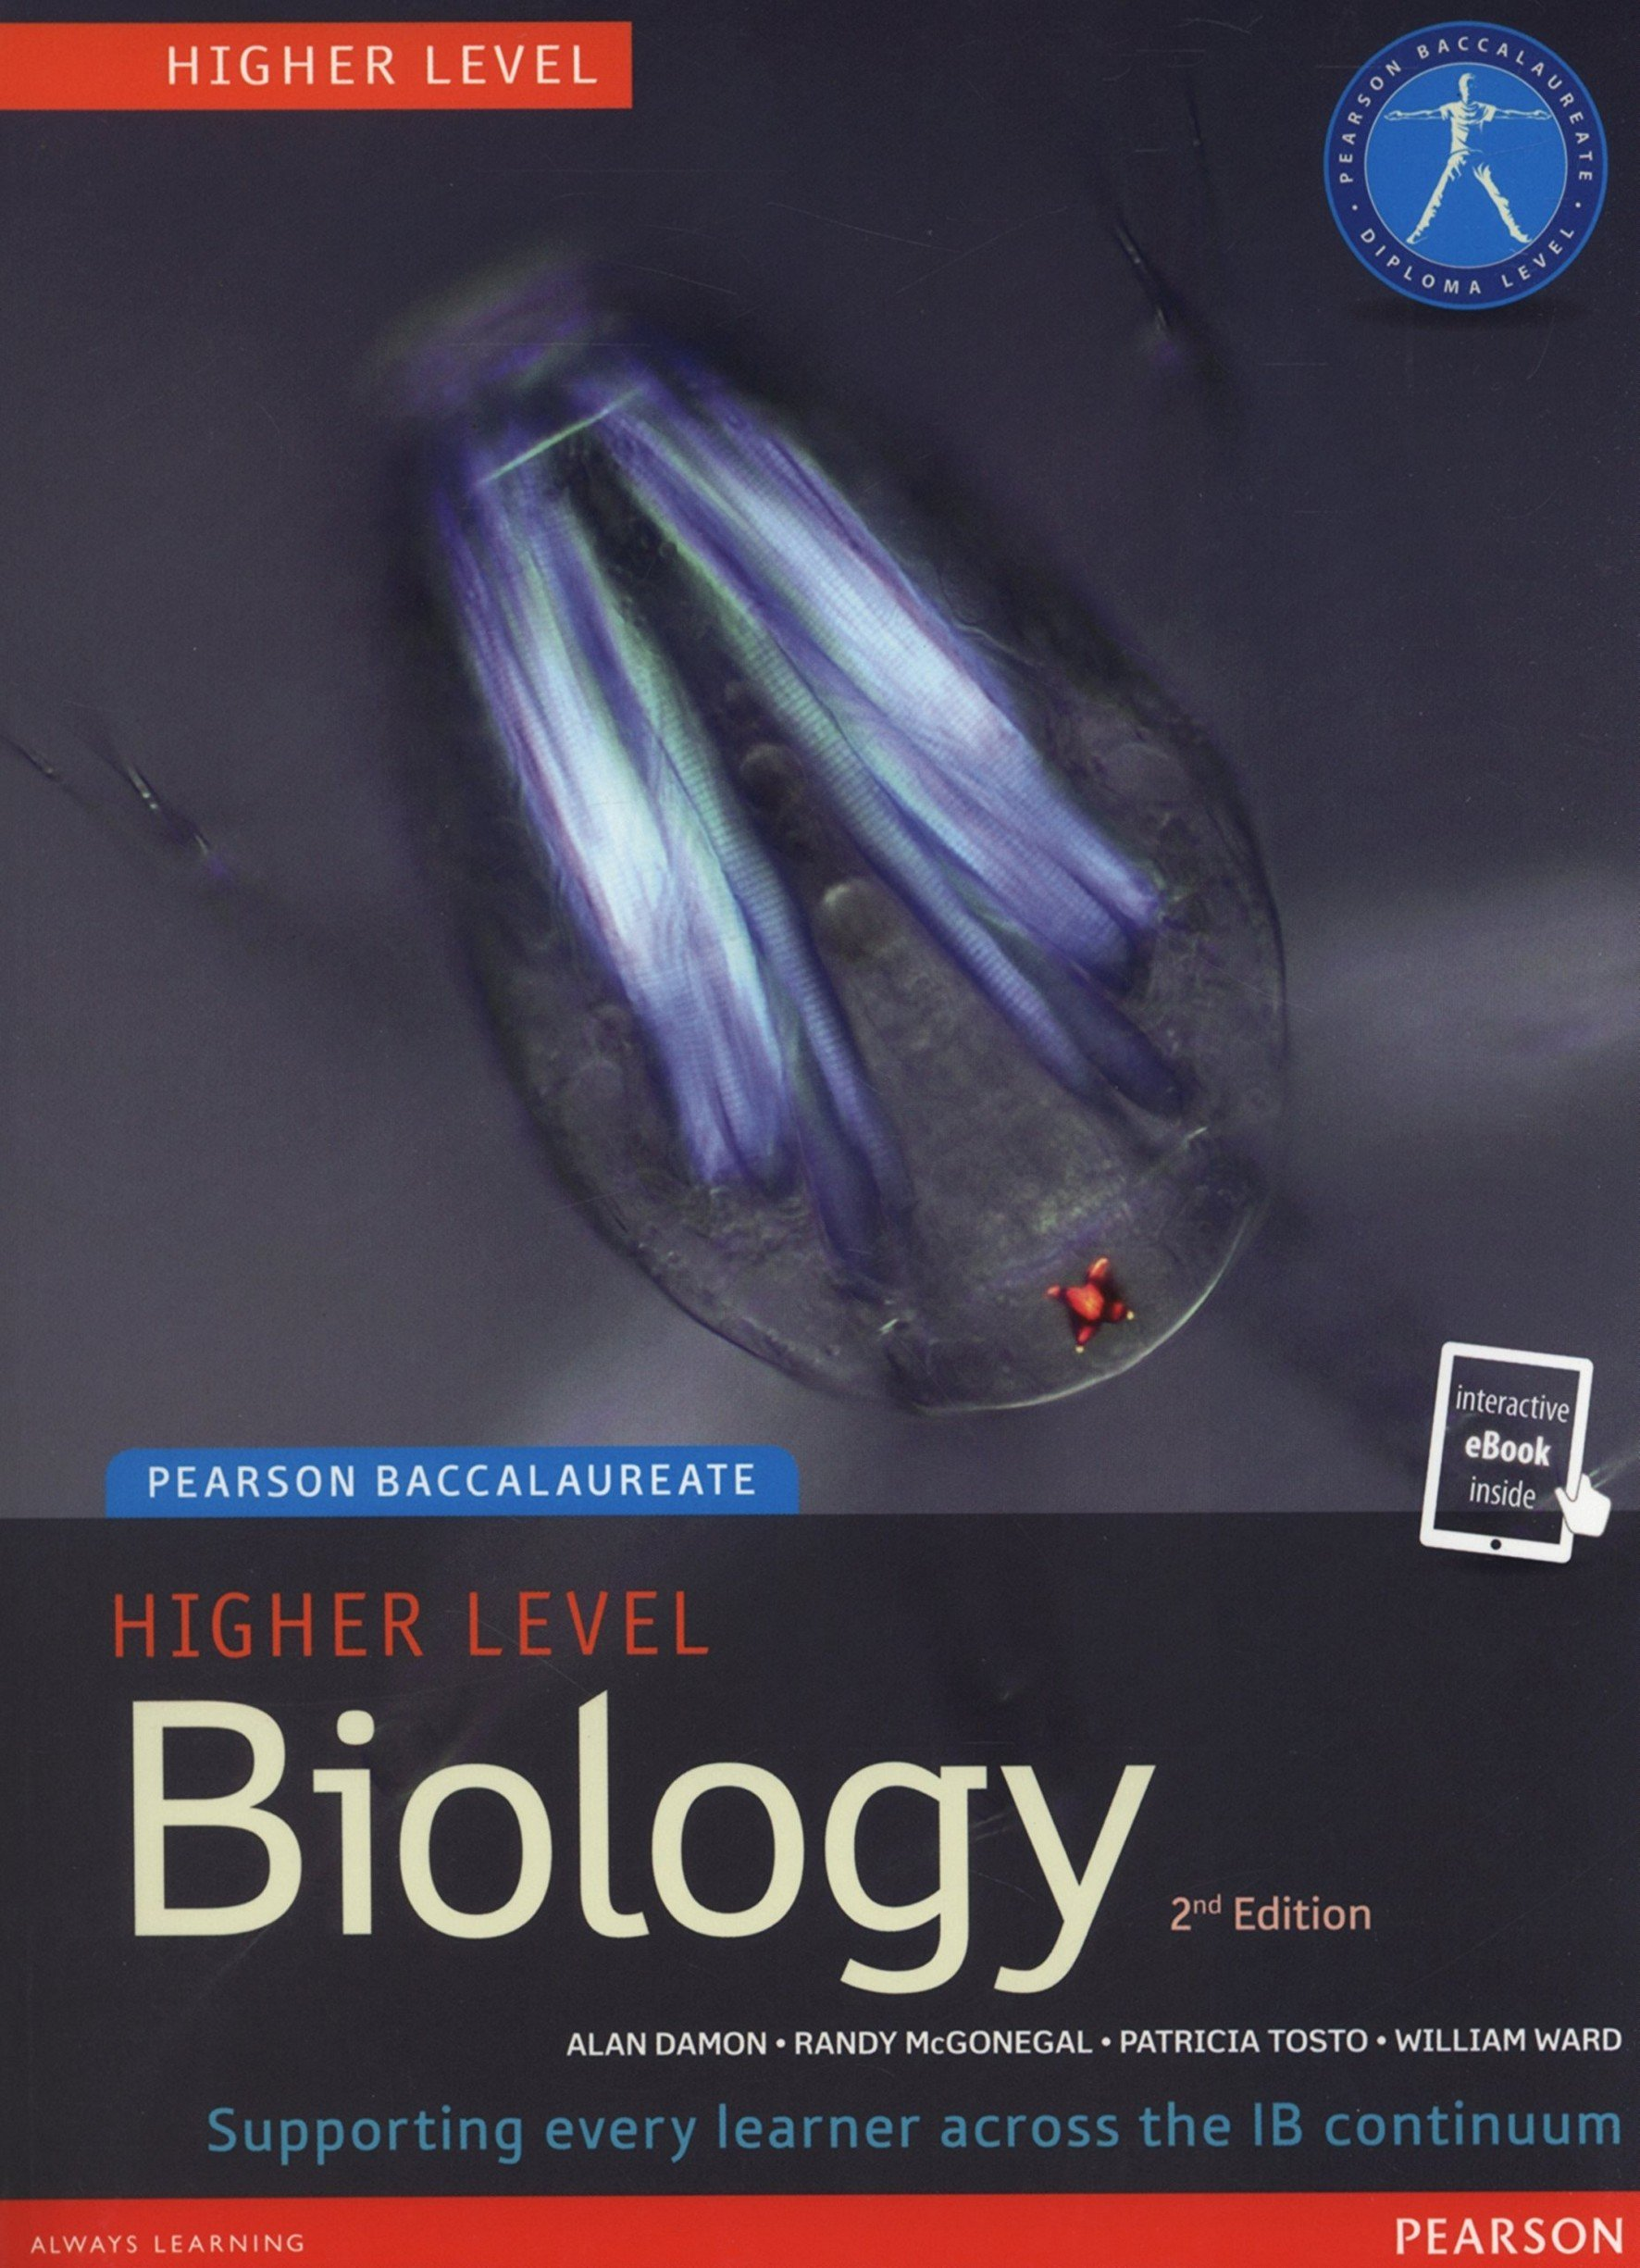 Buy Biology (Pearson International Baccalaureate Diploma) Higher